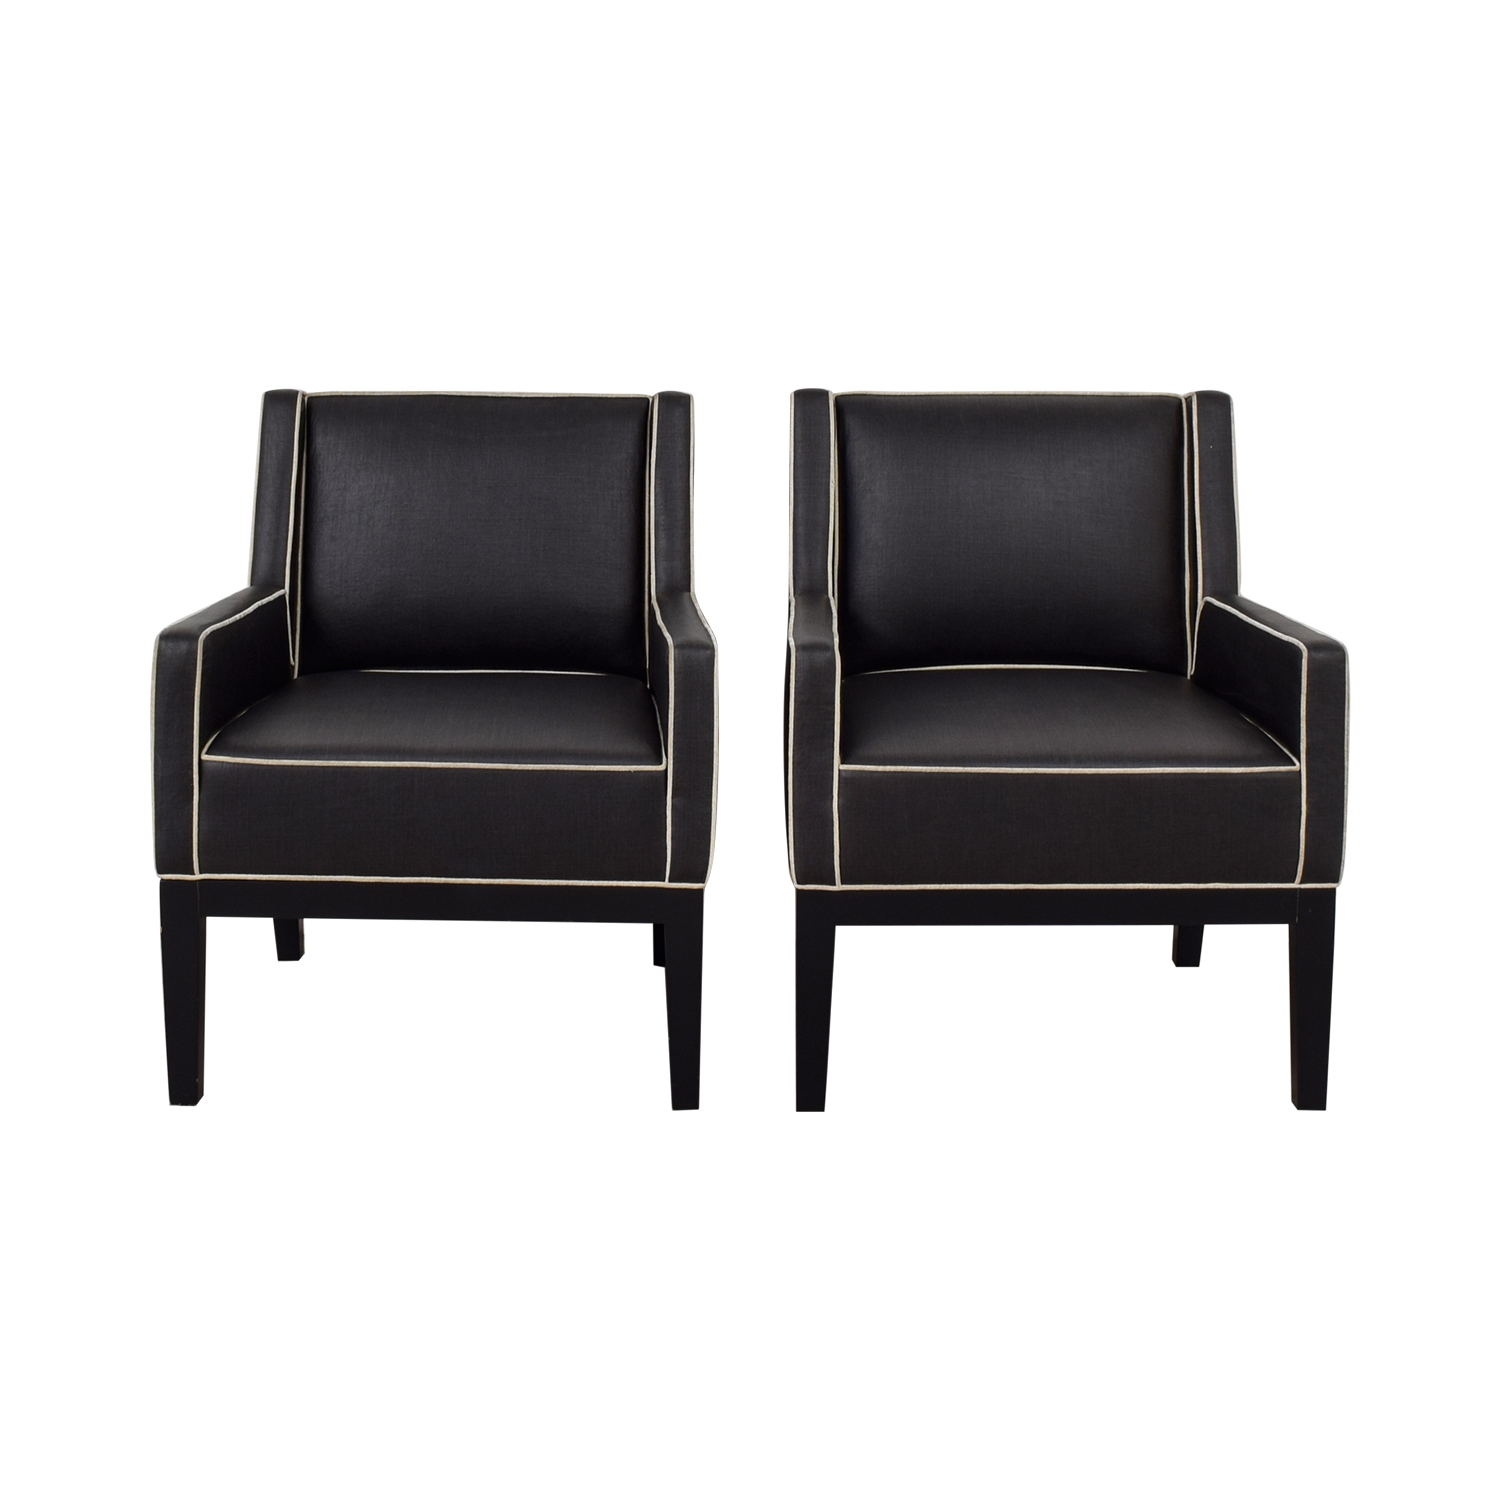 Furniture Masters Furniture Masters Tuxedo Chairs on sale